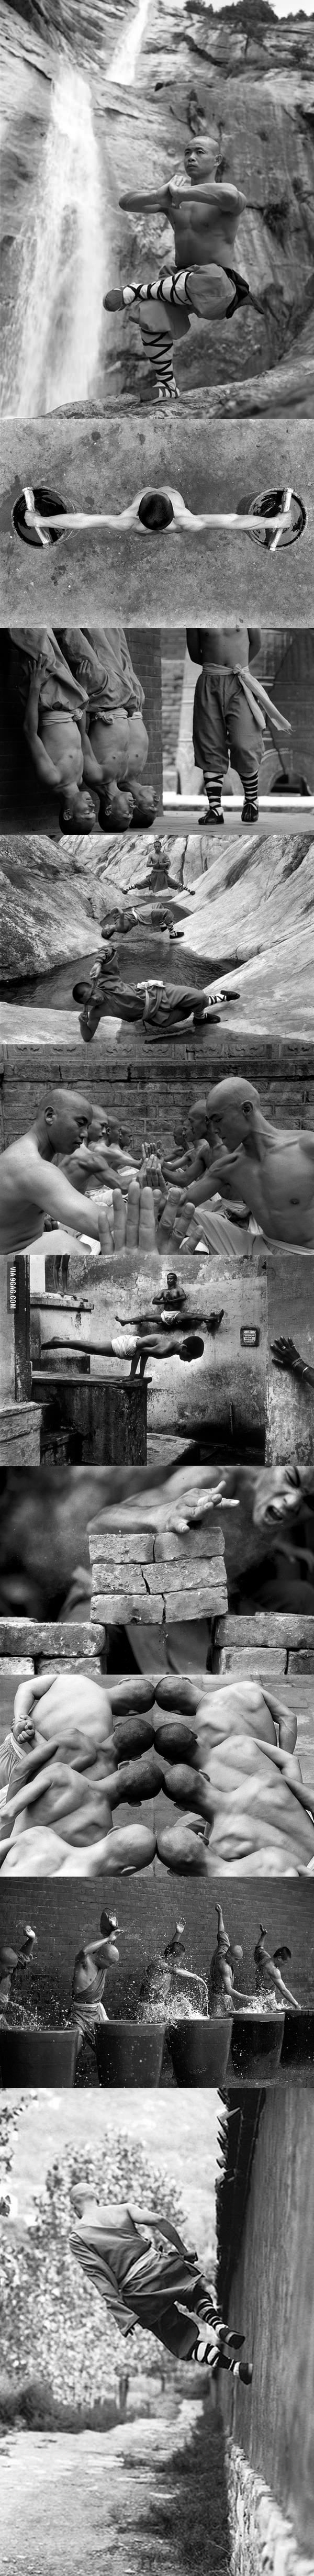 The Dedication of Shaolin Monks: Mind over Matter